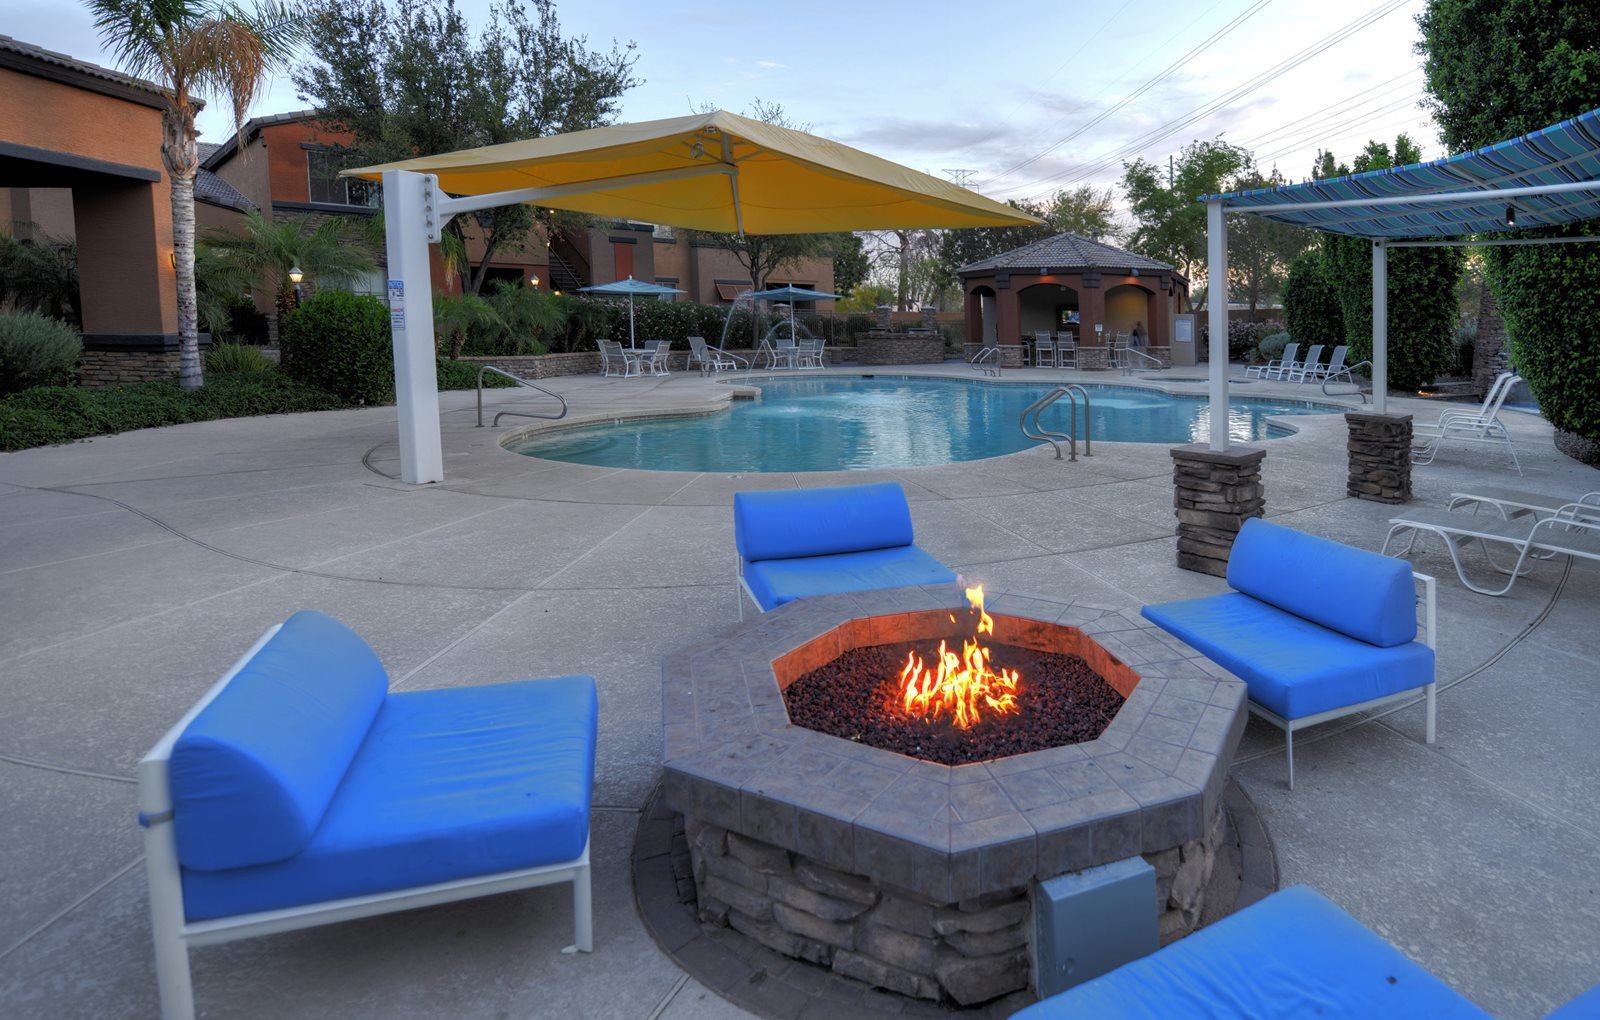 Coldwater springs apartments apartments in avondale az - One bedroom apartments in avondale az ...